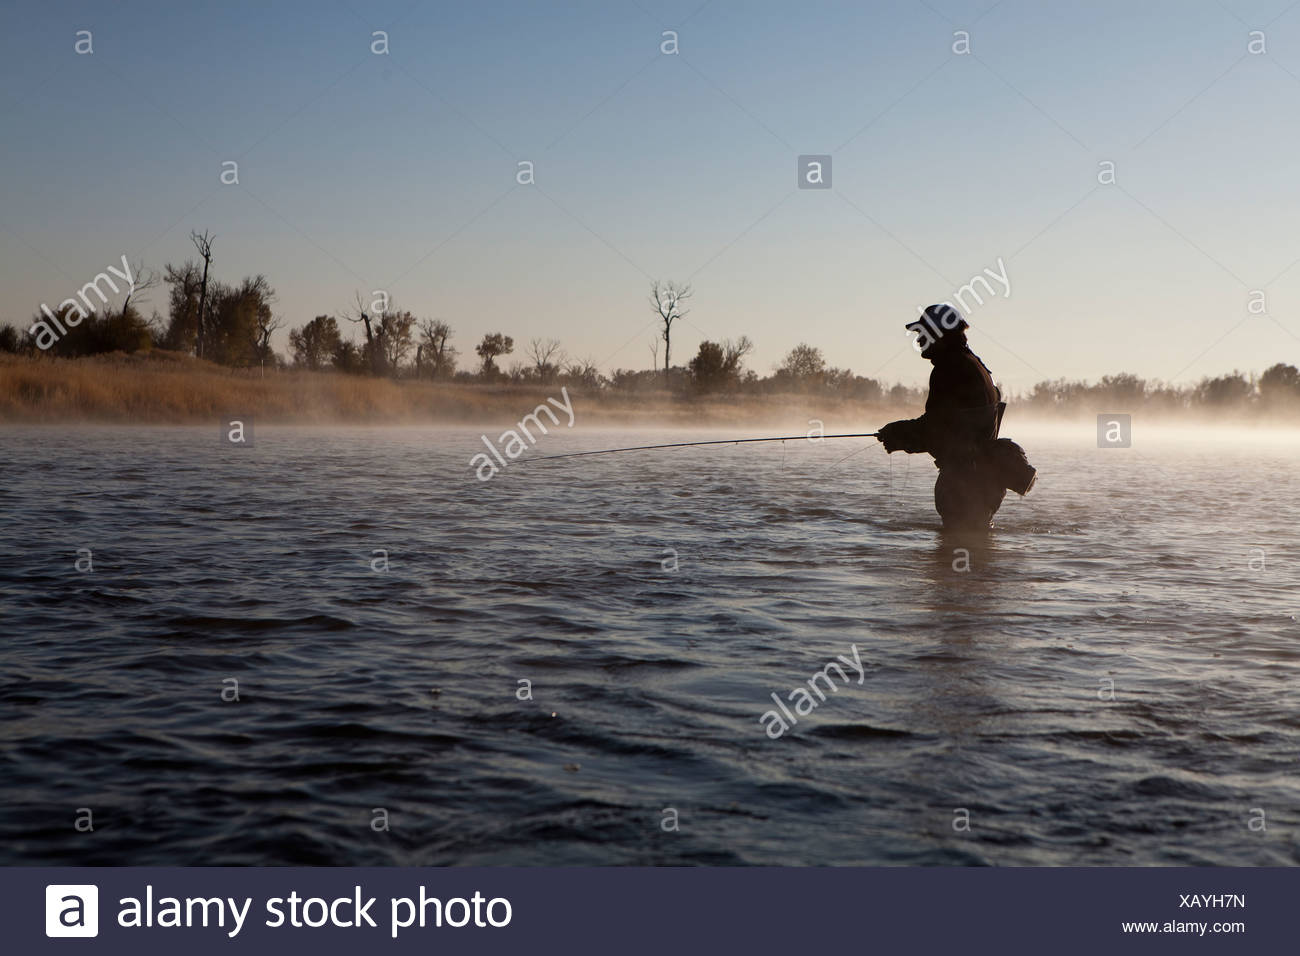 A man fishing in the early morning mist of the Green river. - Stock Image